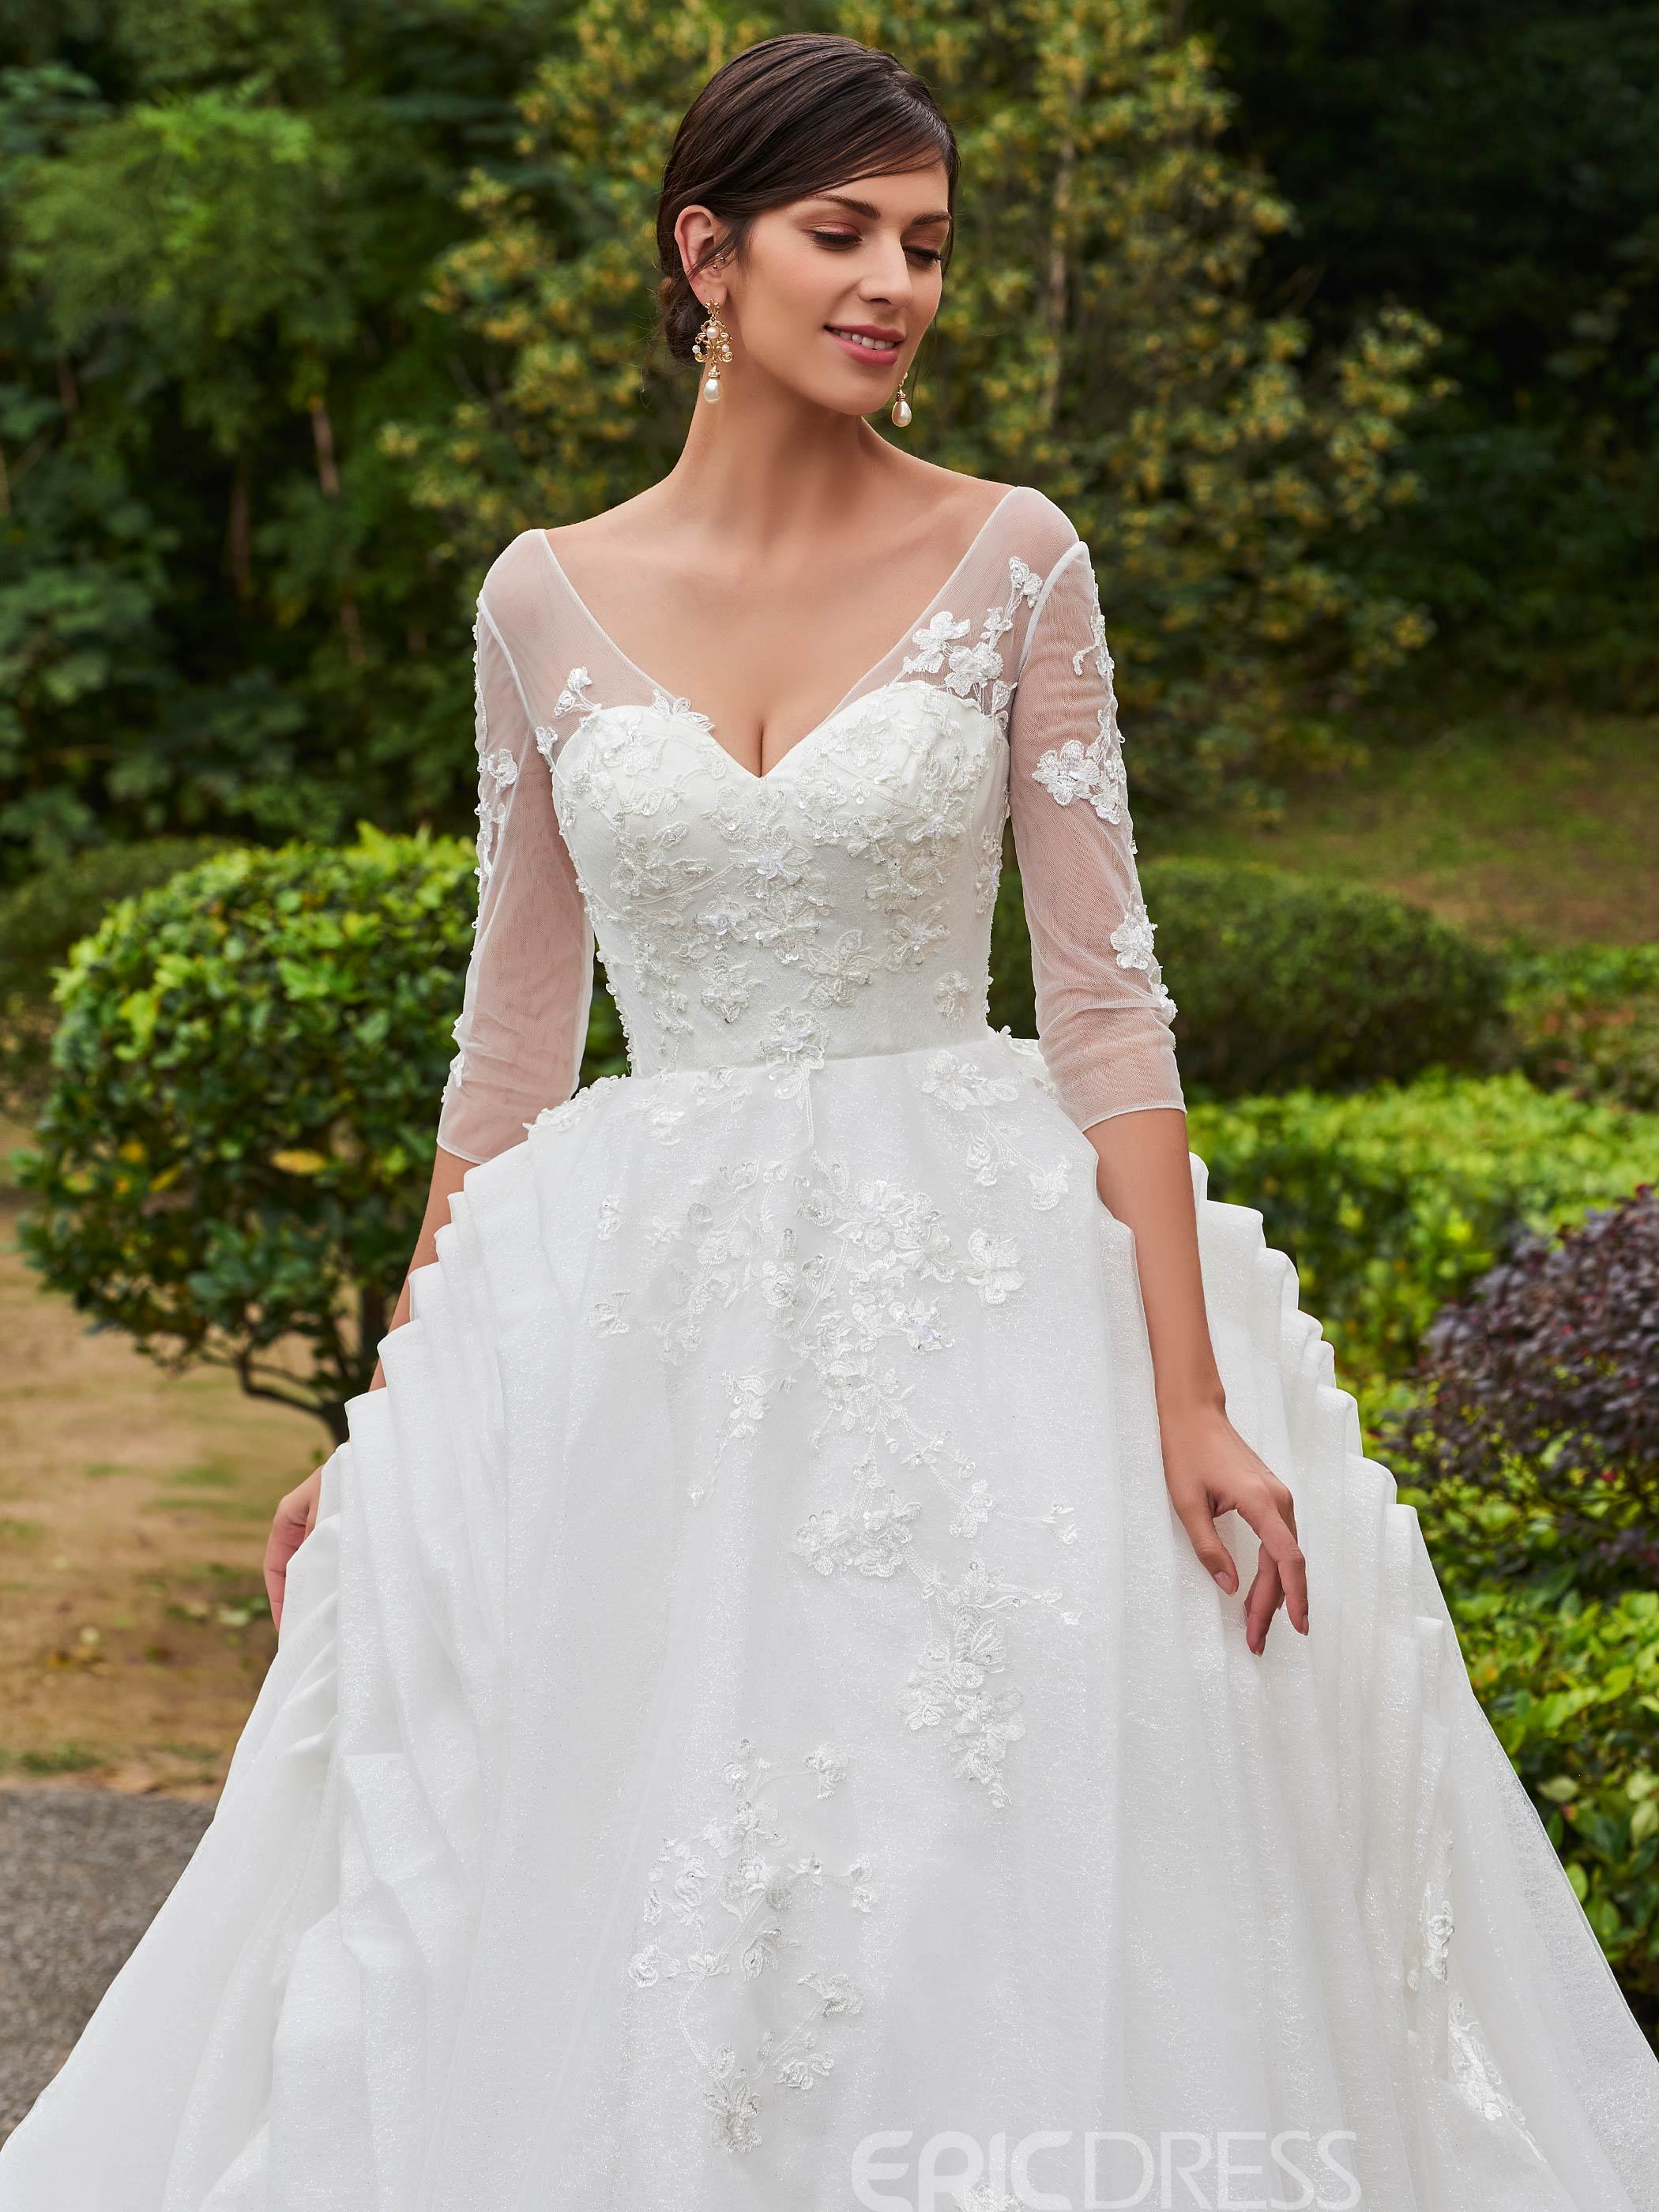 Ericdress Elegant Appliques V Neck A Line Wedding Dress With Sleeves